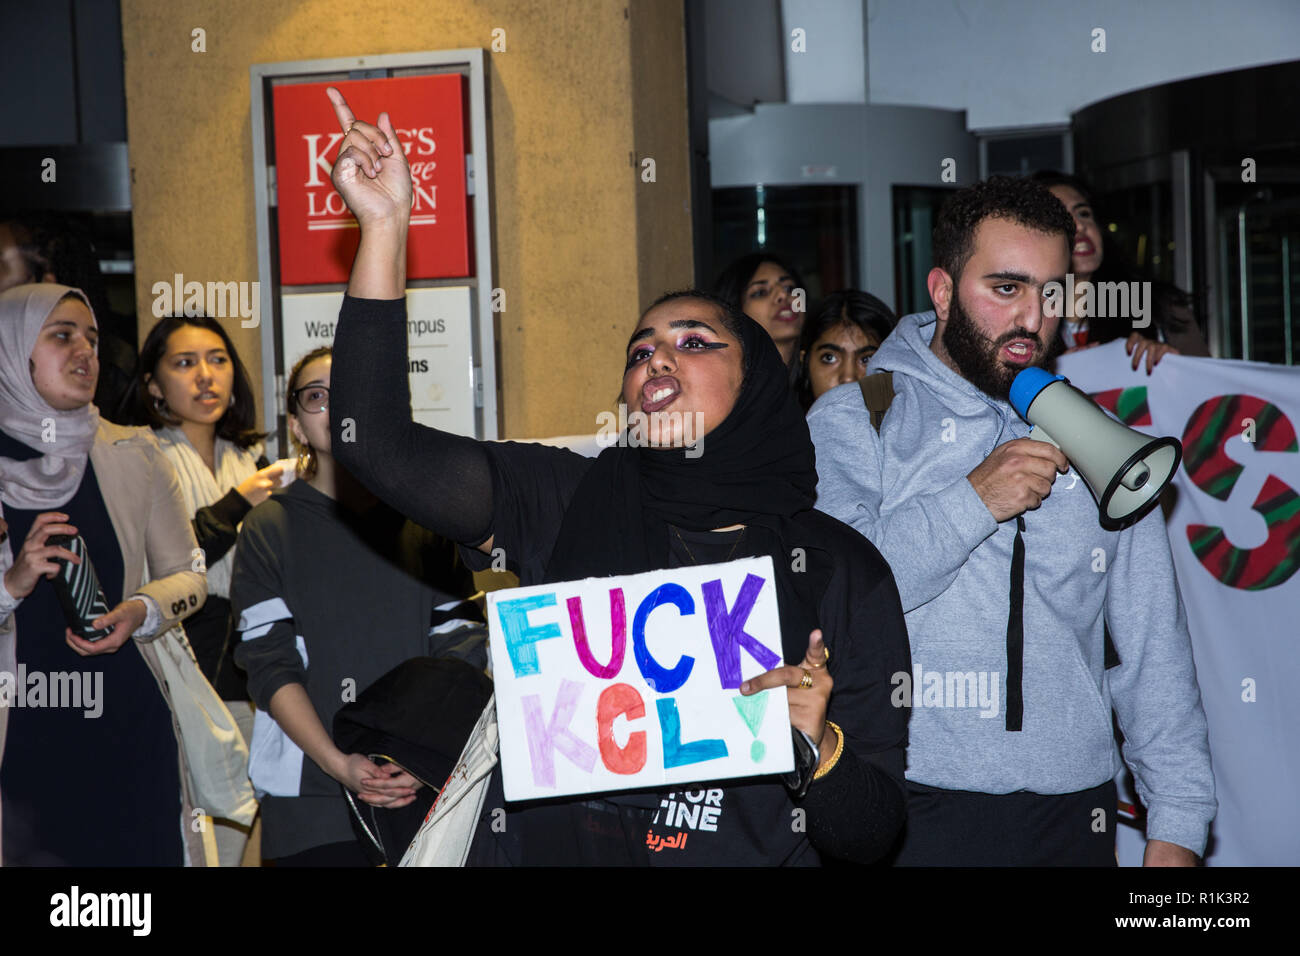 London, UK. 13th November, 2018. Students take part in a creative and non-violent Festival of Resistance organised in protest against a speech at King's College London (KCL) by Mark Regev, the Israeli Ambassador to the UK, against the consequent normalisation and legitimisation by KCL of Israel's oppression of the Palestinian people and against KCL's clampdown on student activism. Credit: Mark Kerrison/Alamy Live News Stock Photo